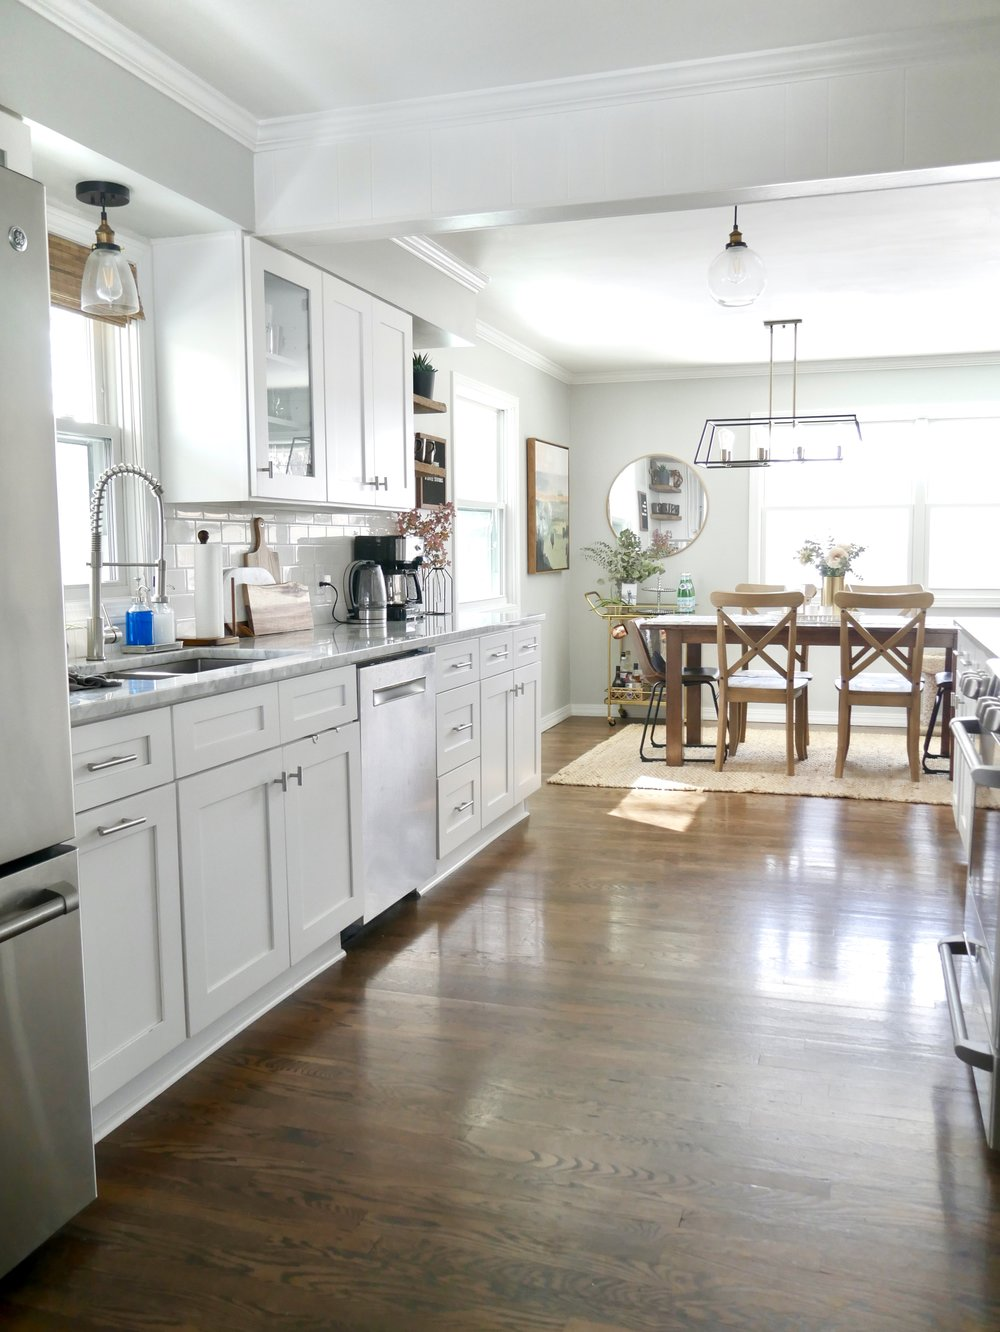 Our Fifties Fixer Upper Kitchen Sources